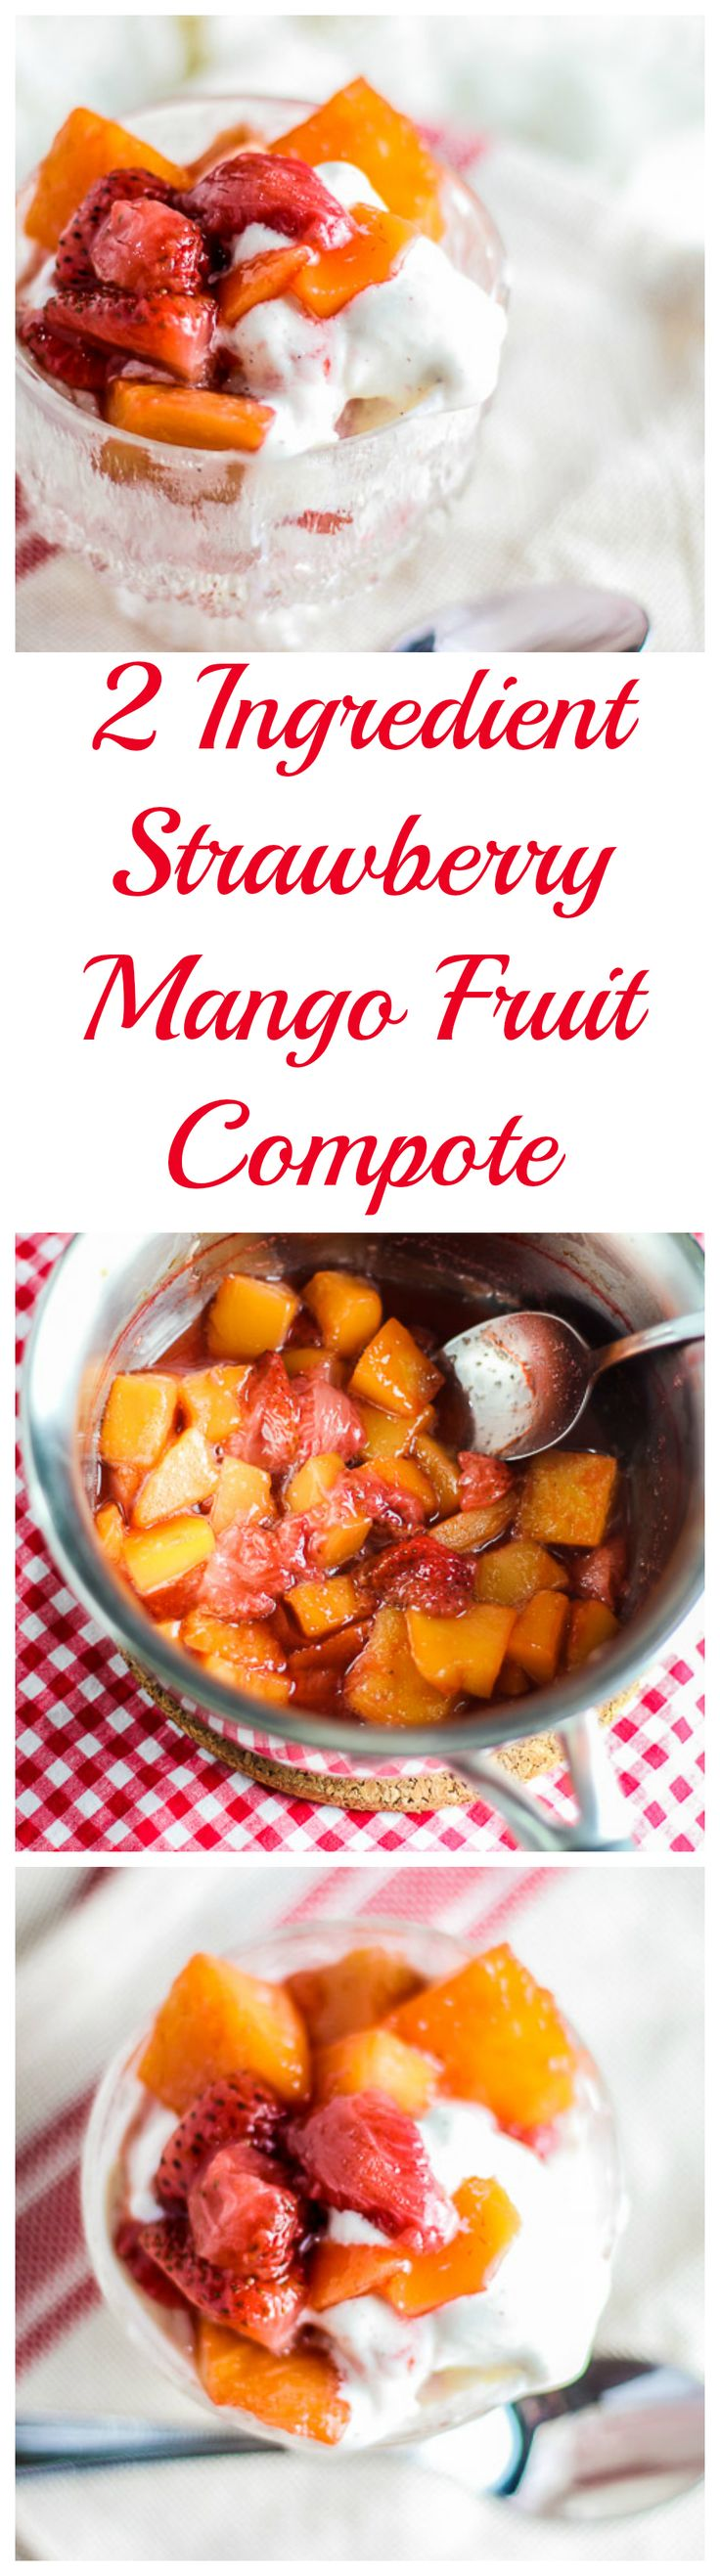 Lightly sweet and fresh Strawberry Mango Fruit Compote Over Vanilla Ice Cream - SO quick to make with only 2 ingredients! #compote #fruitcompote #youtube #foodblog #dessert #valentinesday